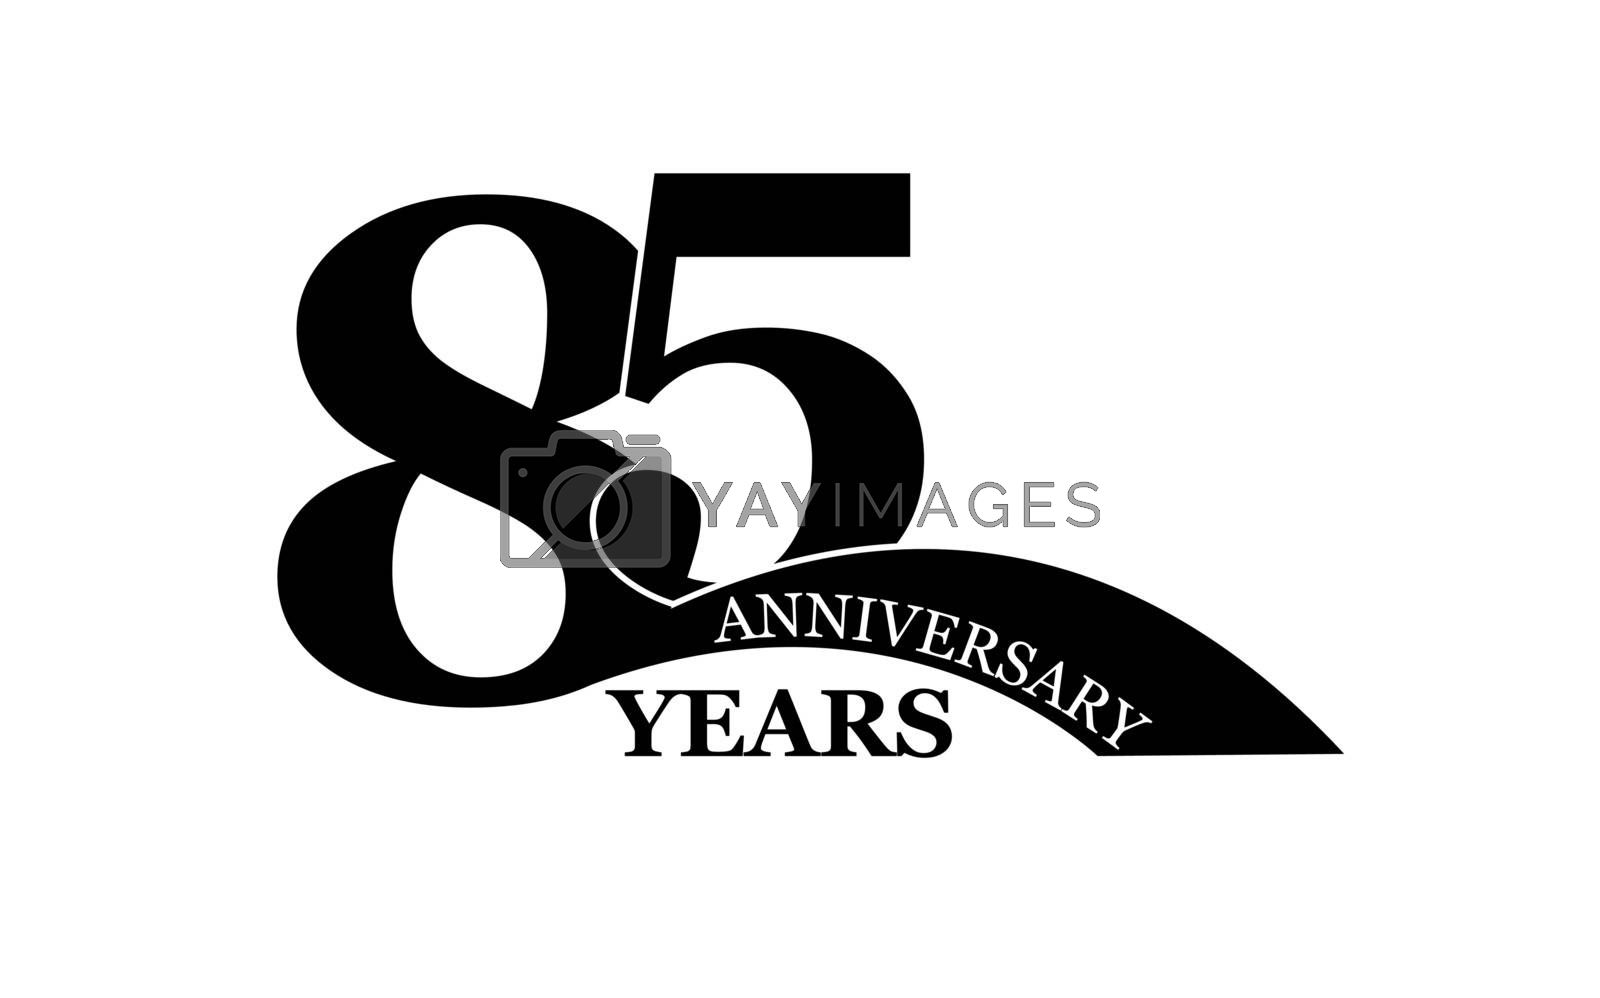 Royalty free image of 85 years anniversary, flat simple design by Grommik